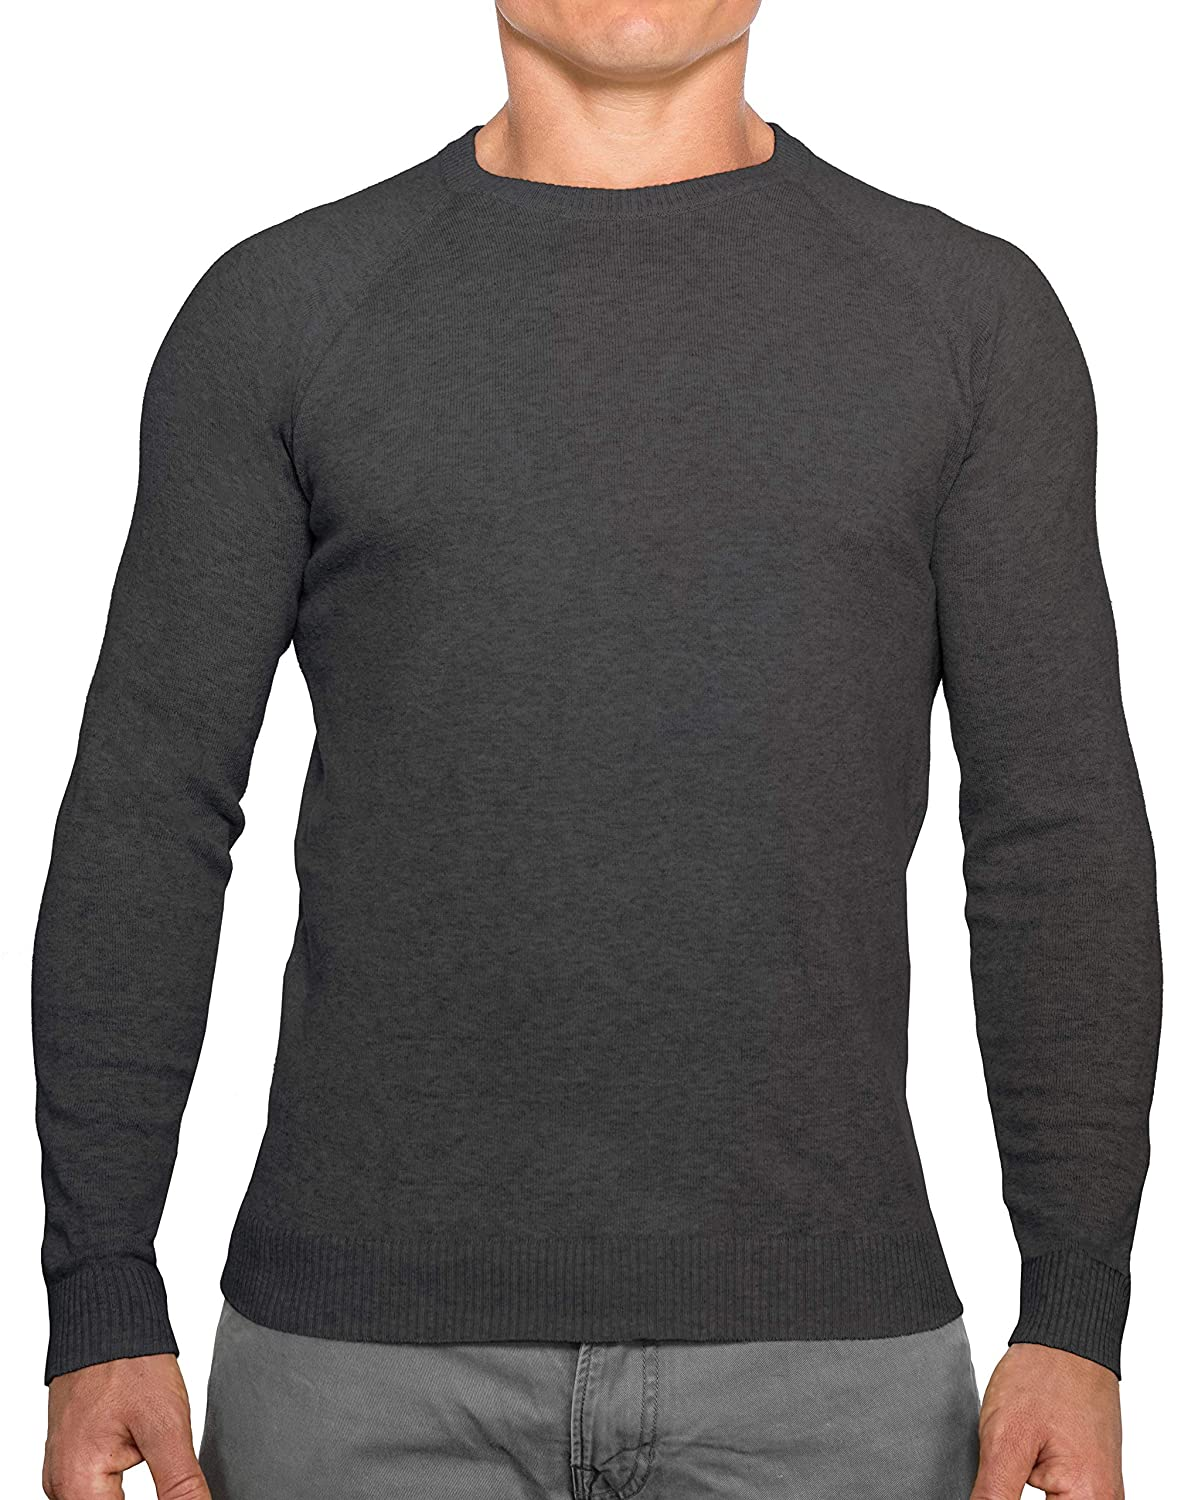 Lightweight Breathable Mens Sweater CC Perfect Slim Fit Crew Neck Sweaters for Men Soft Fitted Pullover for Men